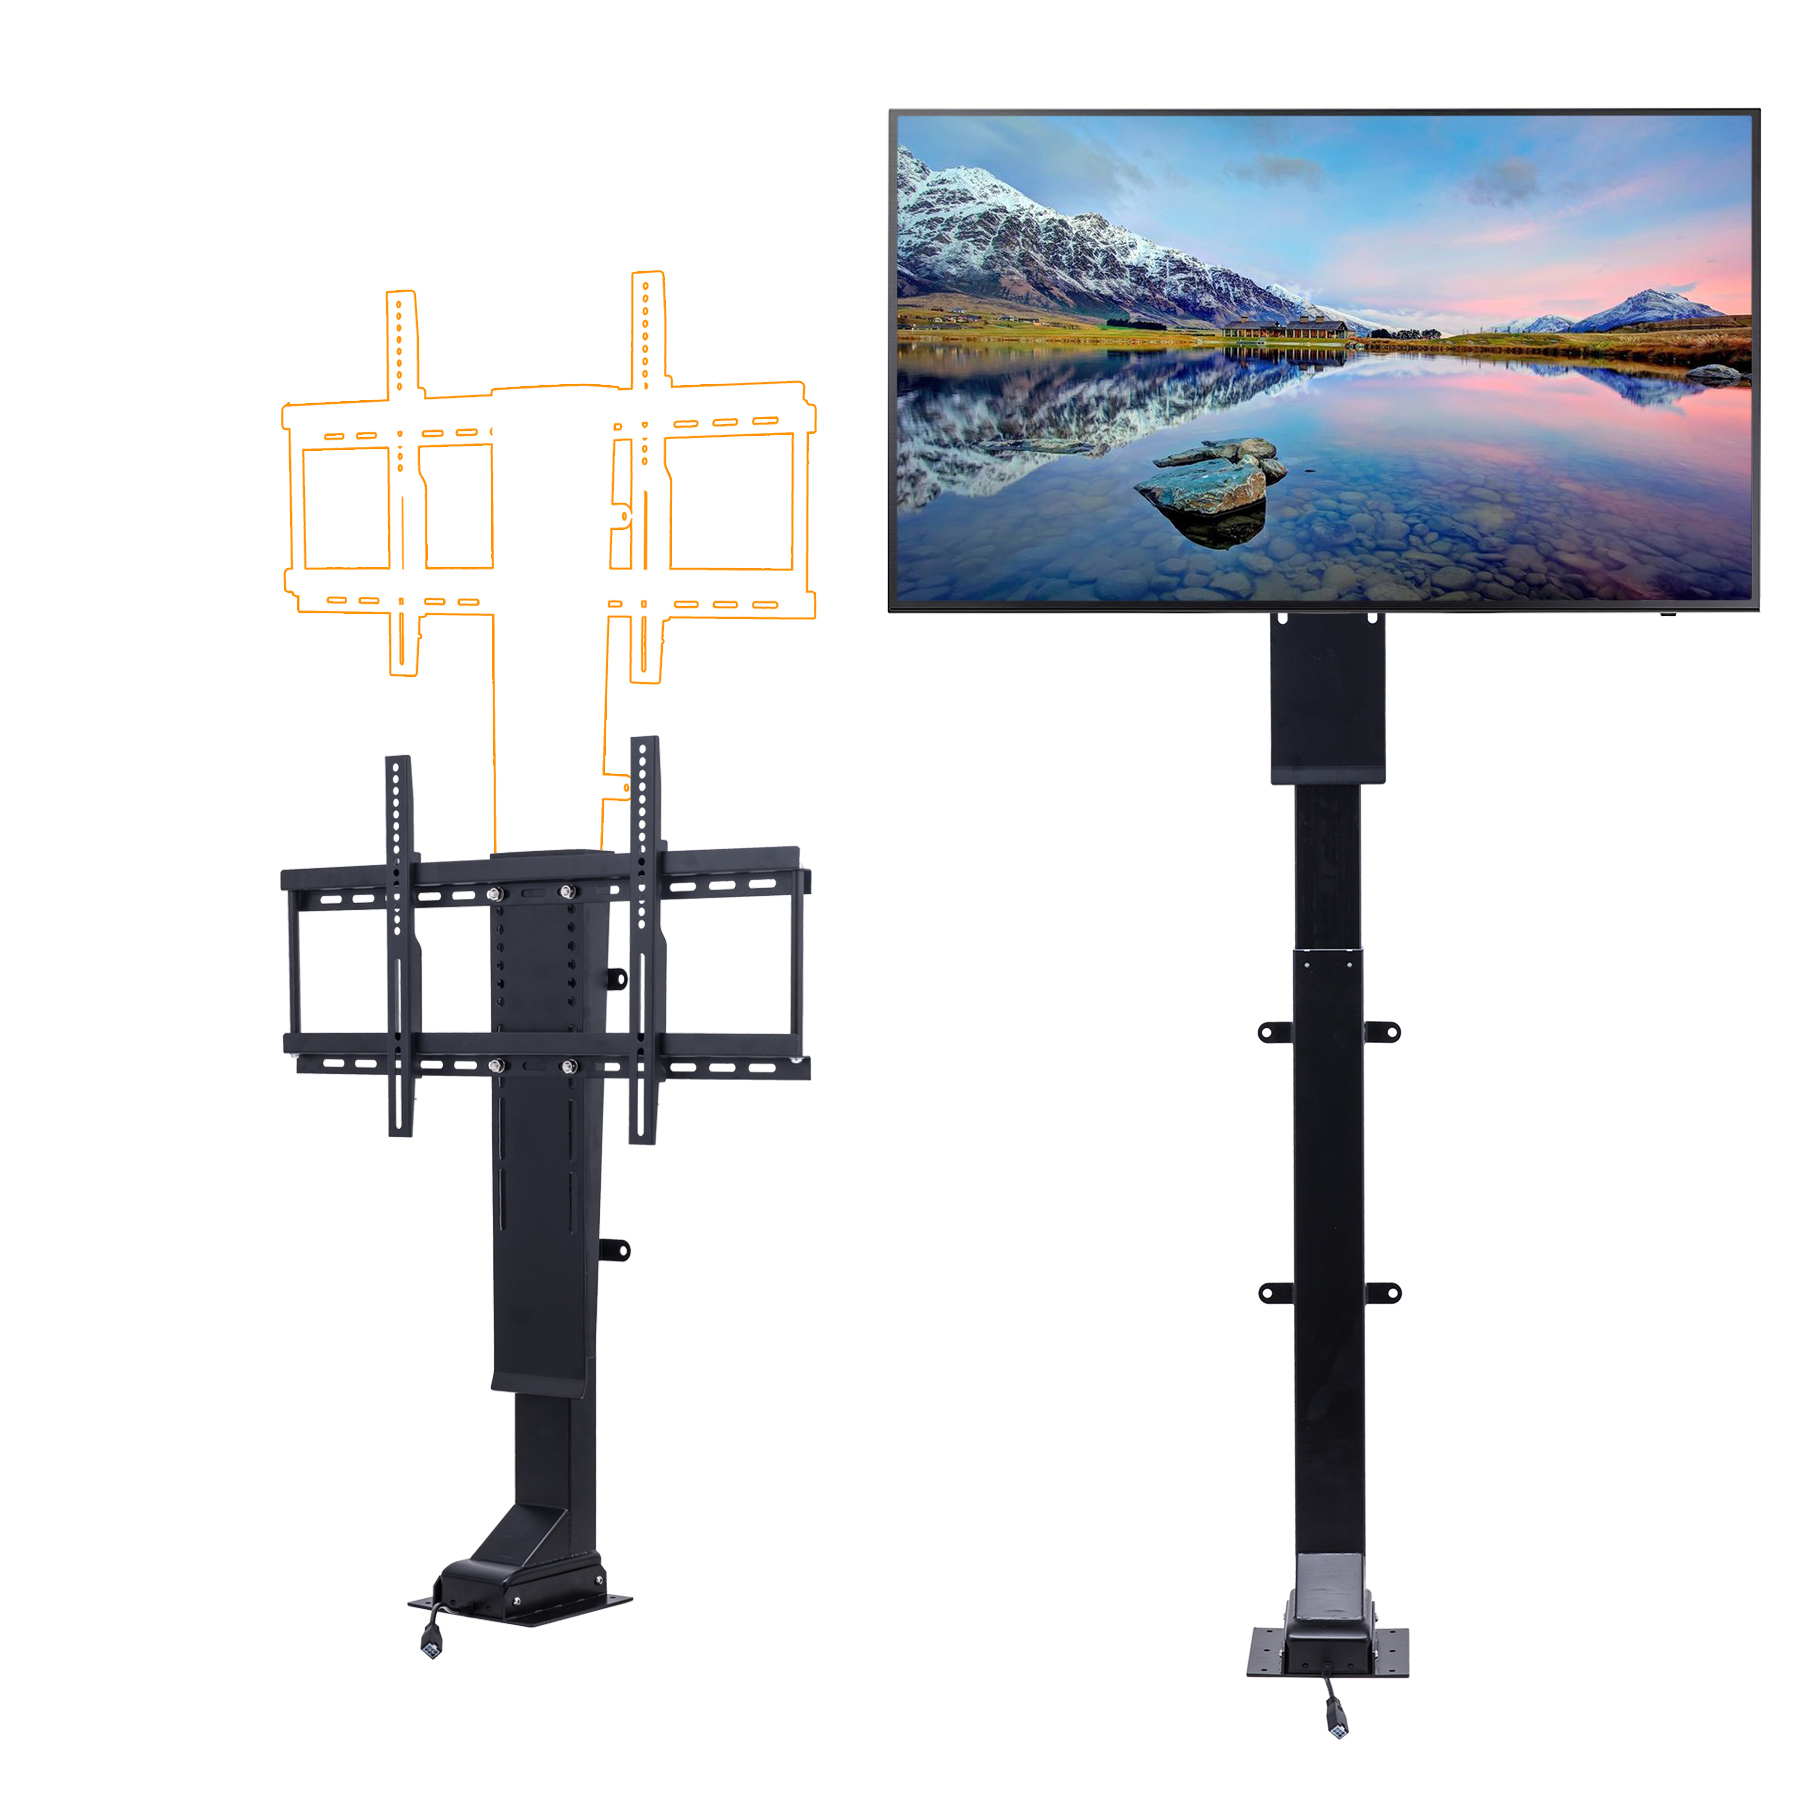 """Motorized TV Mount Lift for 32"""" 70"""" TVs Height Adjustable up to 72"""" w  Remote Controller by"""